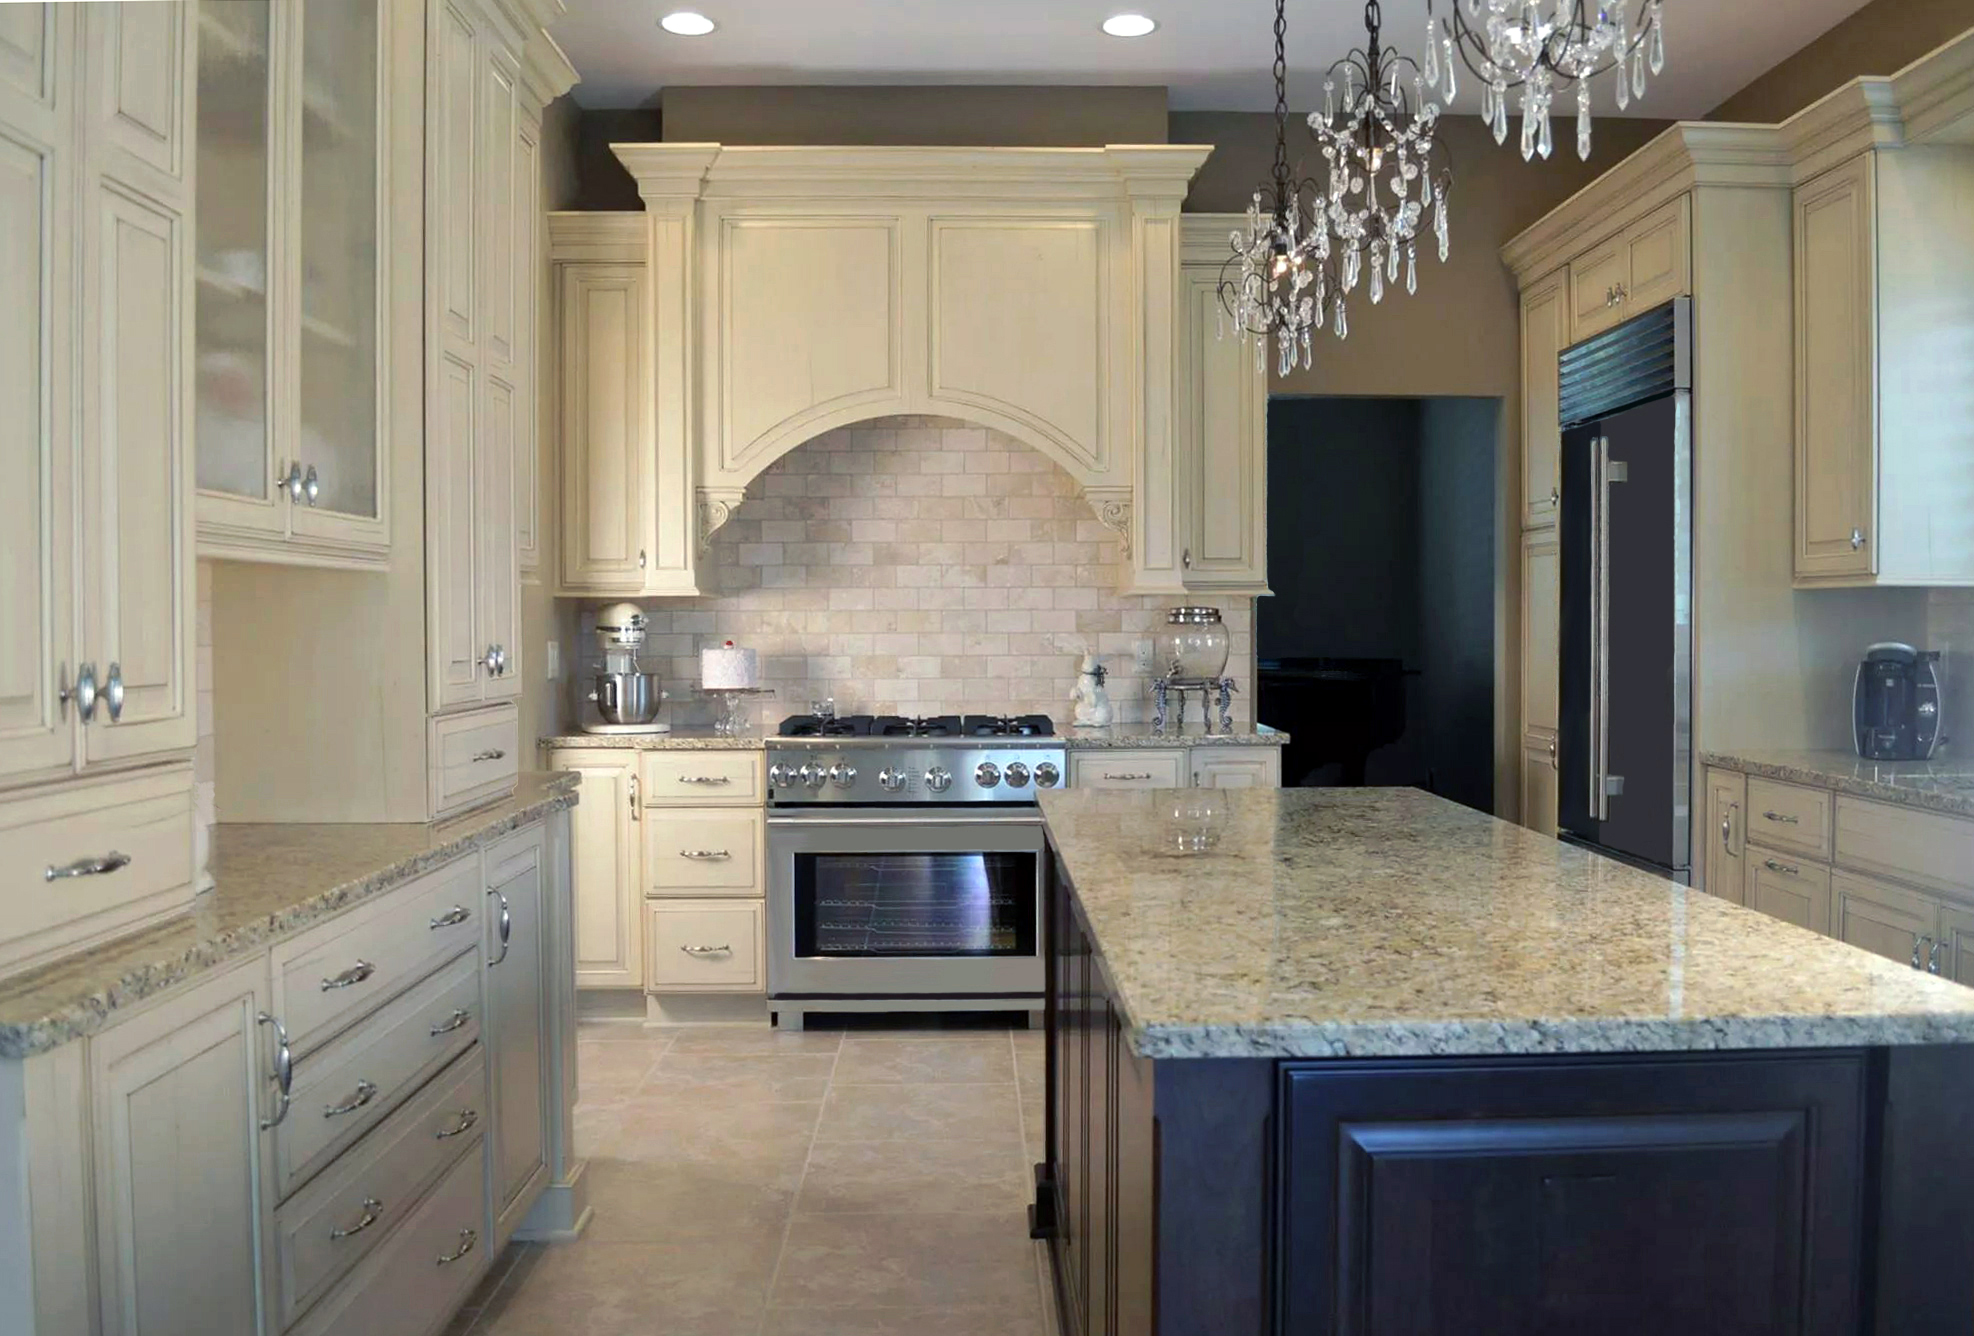 Traditional vs transitional kitchen design for What are the kitchen designs